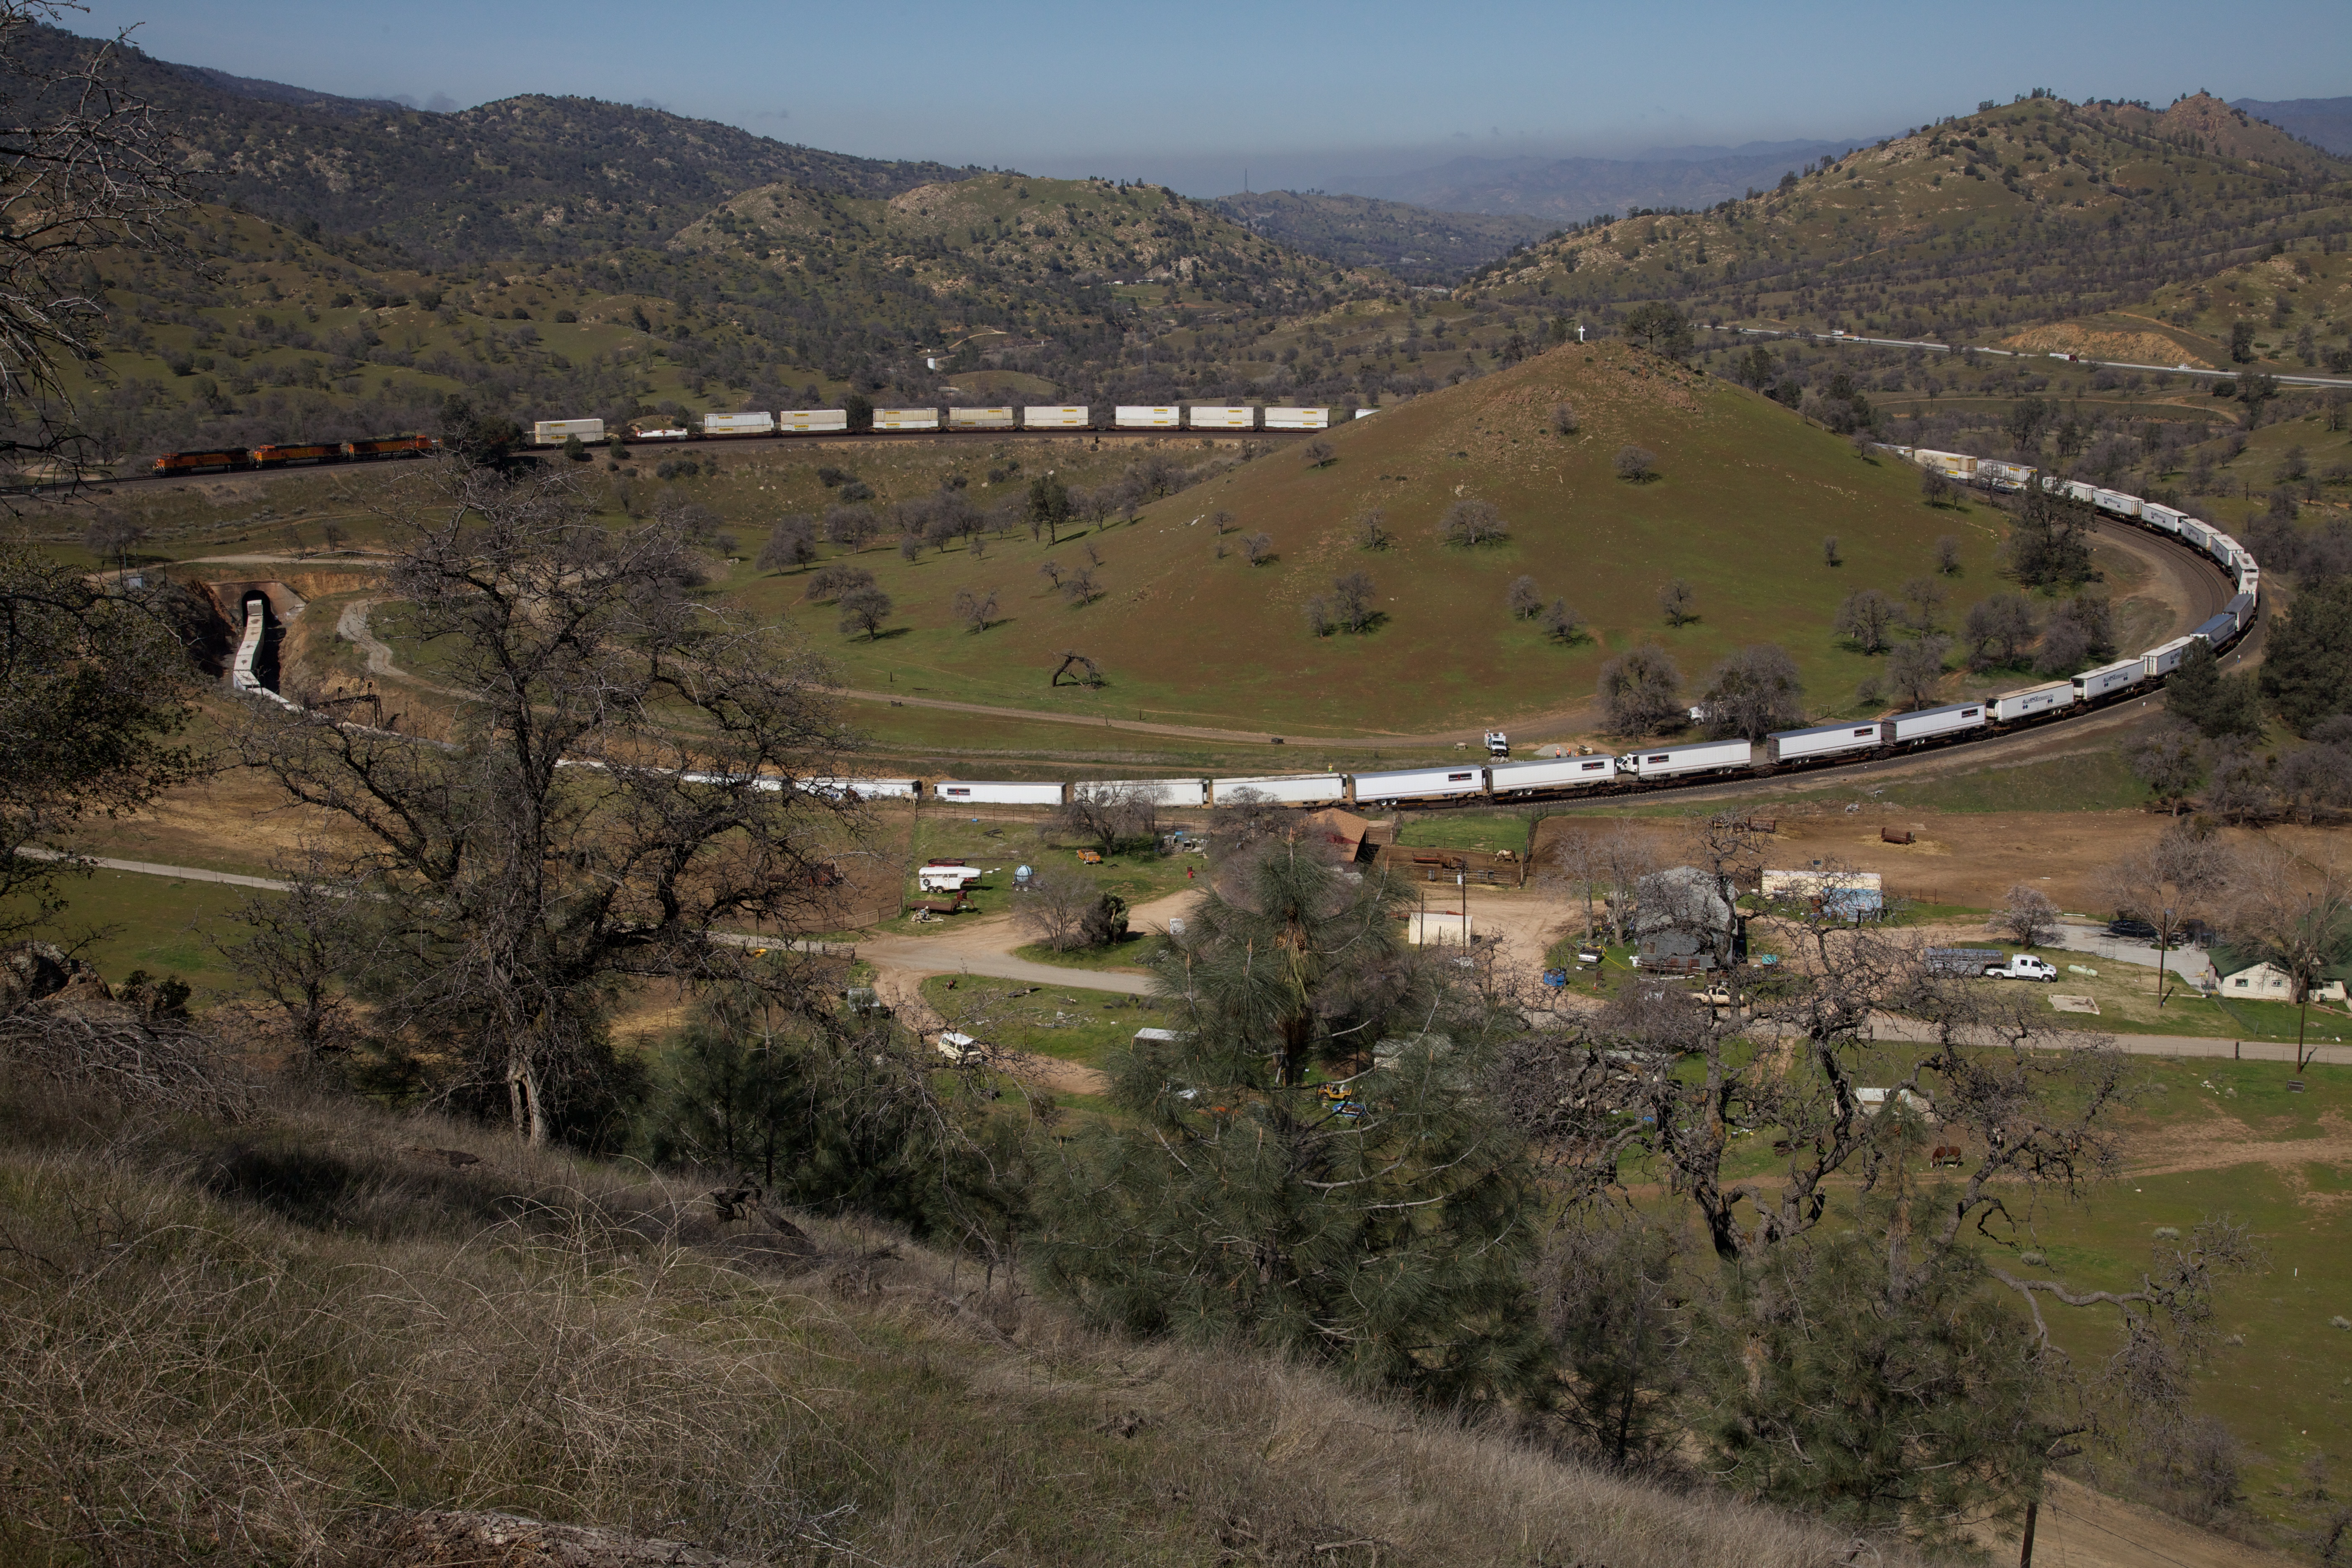 Intermodal_train_on_Tehachapi_Loop.jpg